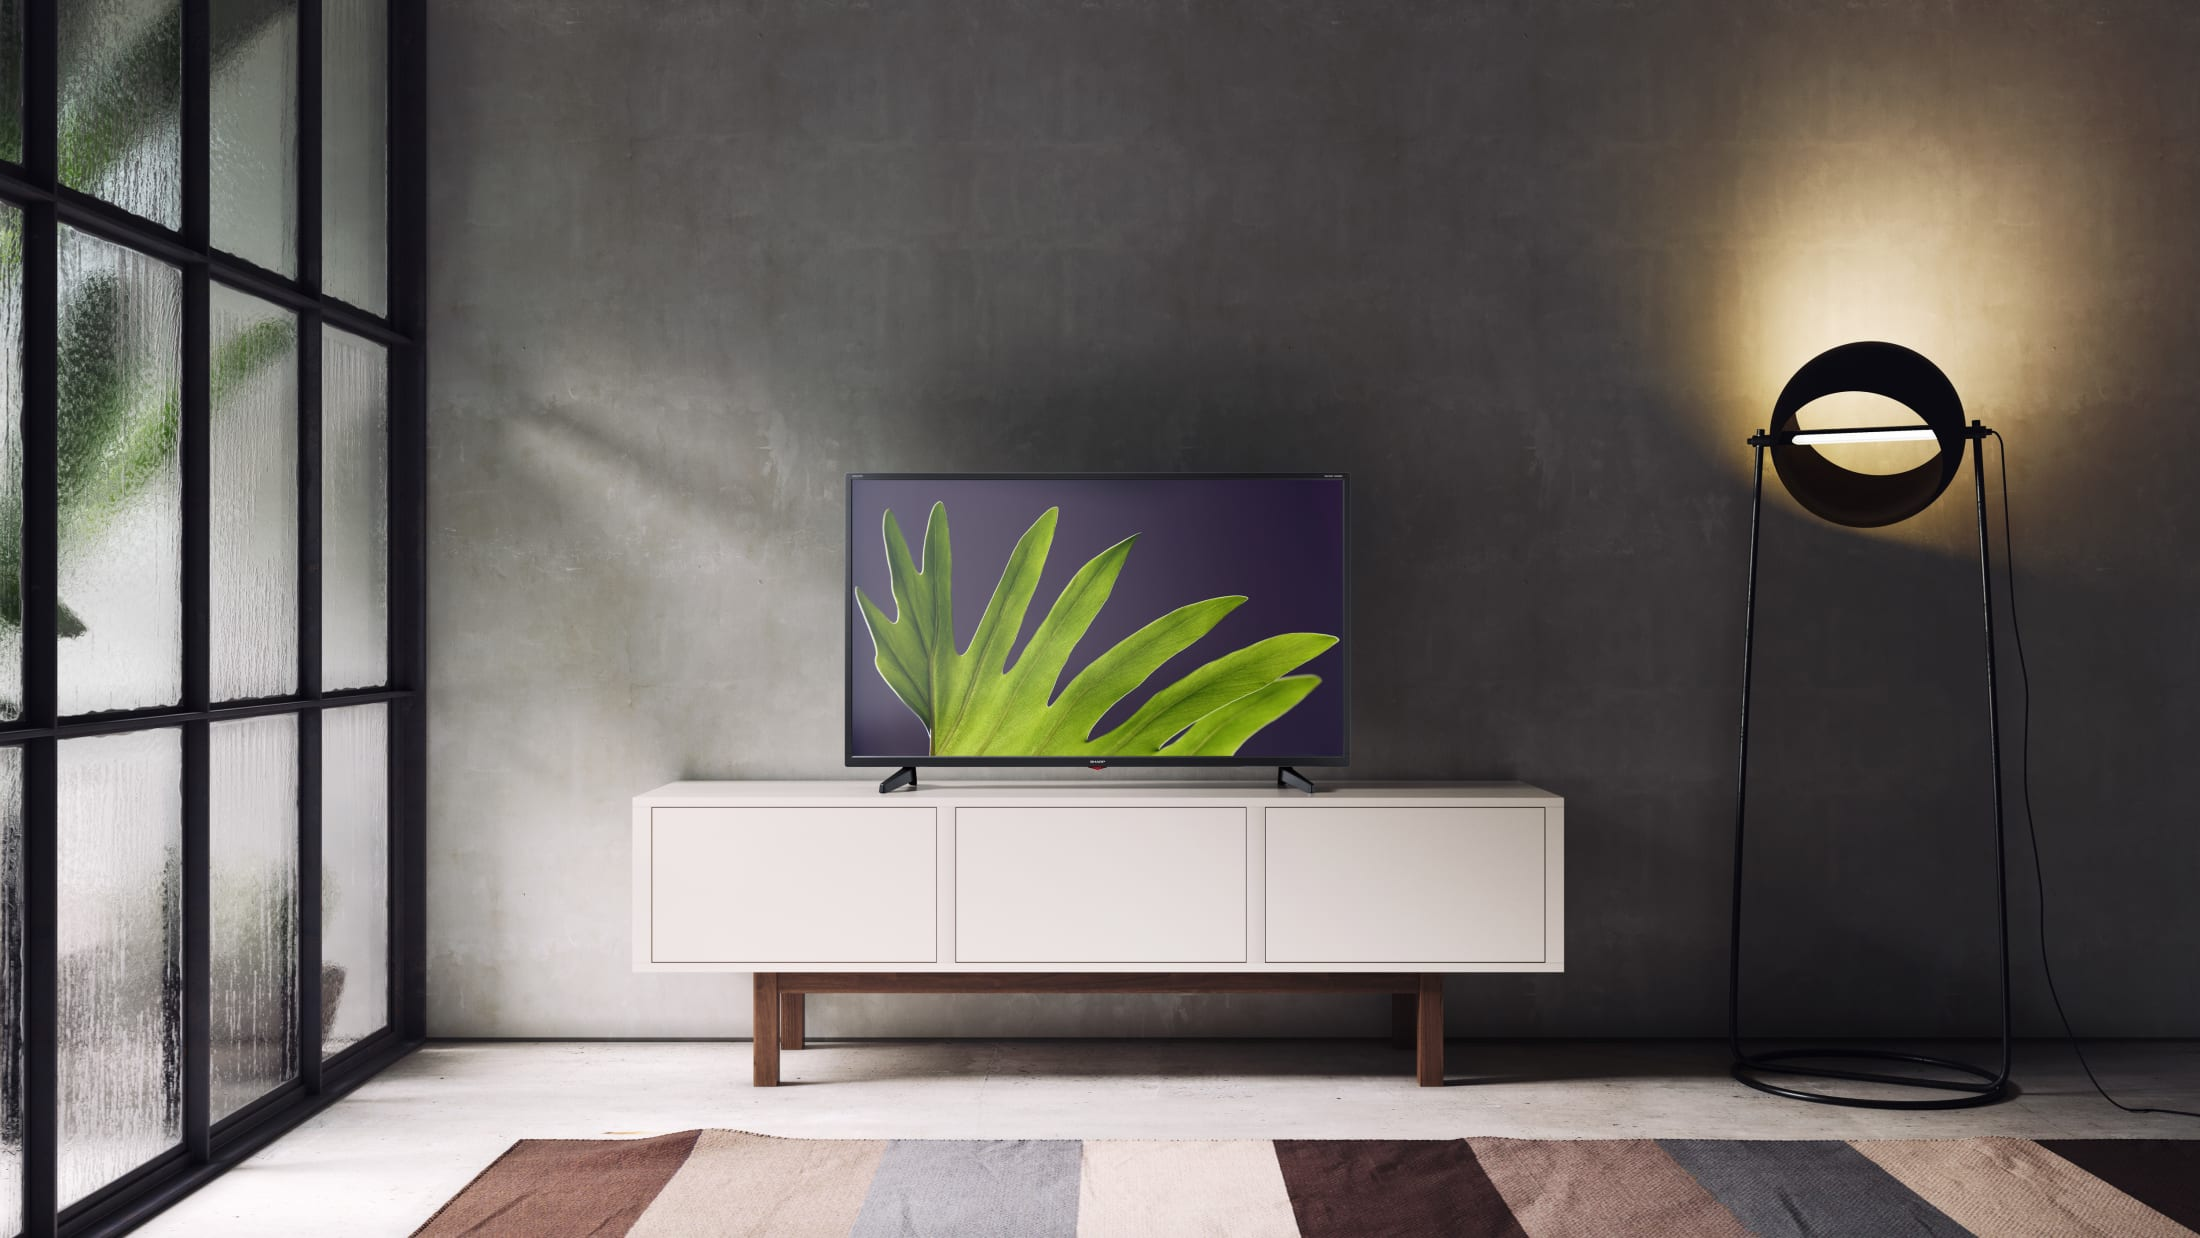 The 32CB3E is a HD Ready LED TV with exceptional picture quality.